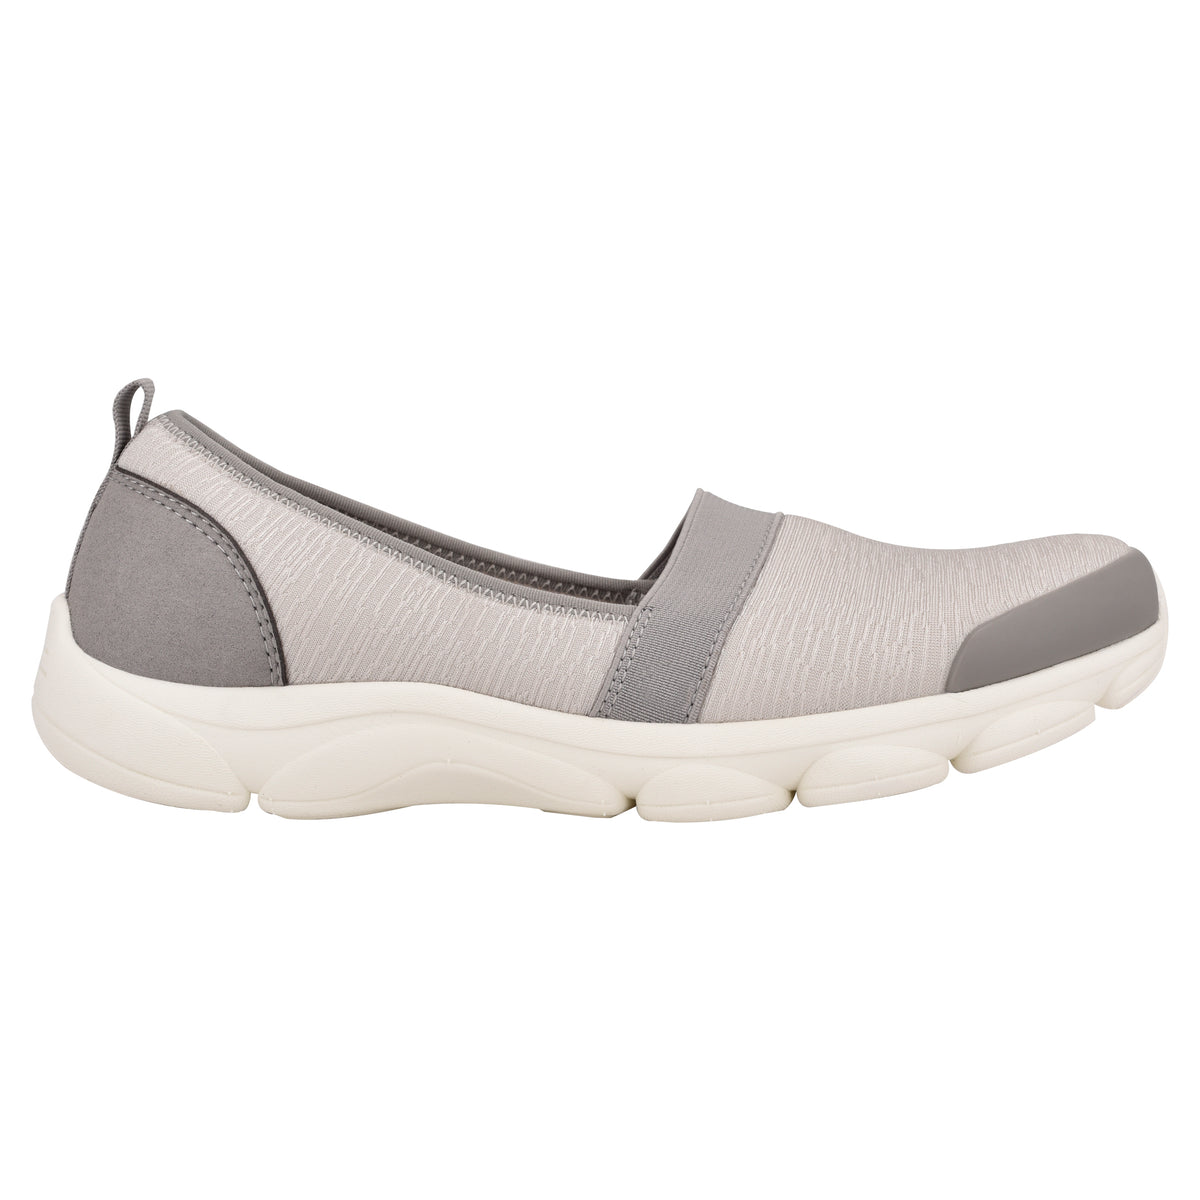 Reelfun Slip On Sneakers